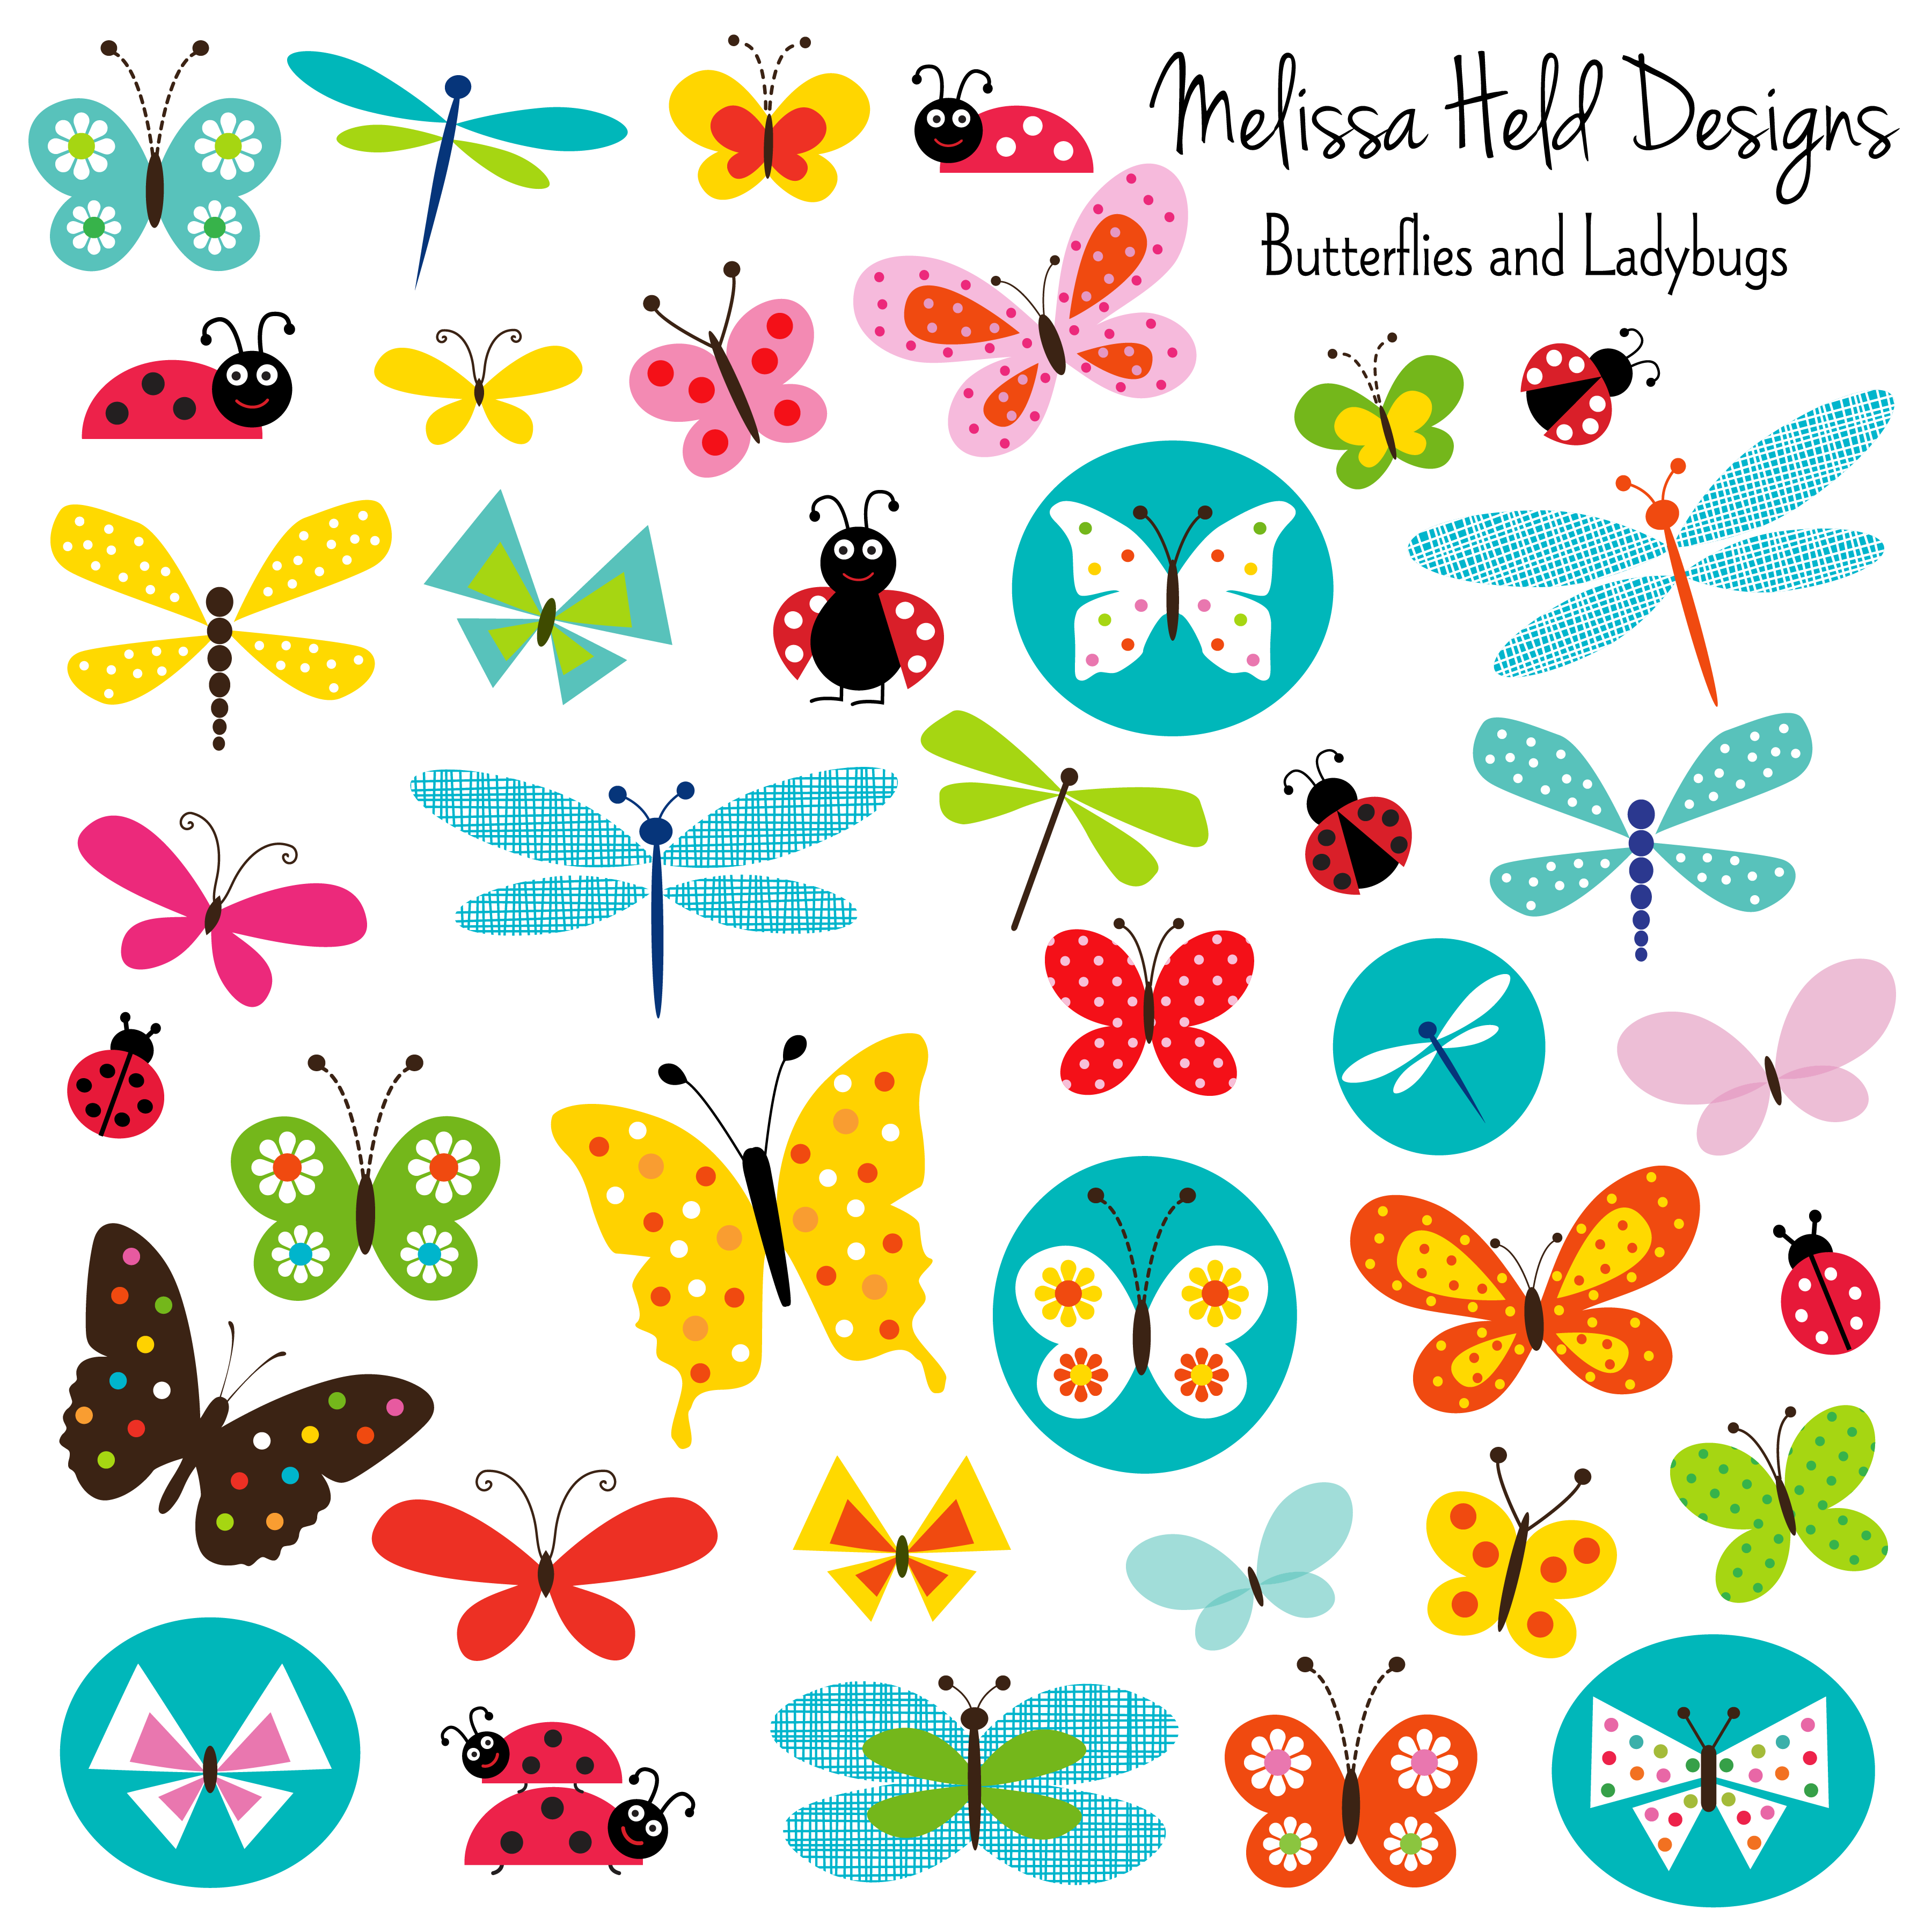 Butterflies and mygrafico illustrations. Ladybugs clipart butterfly